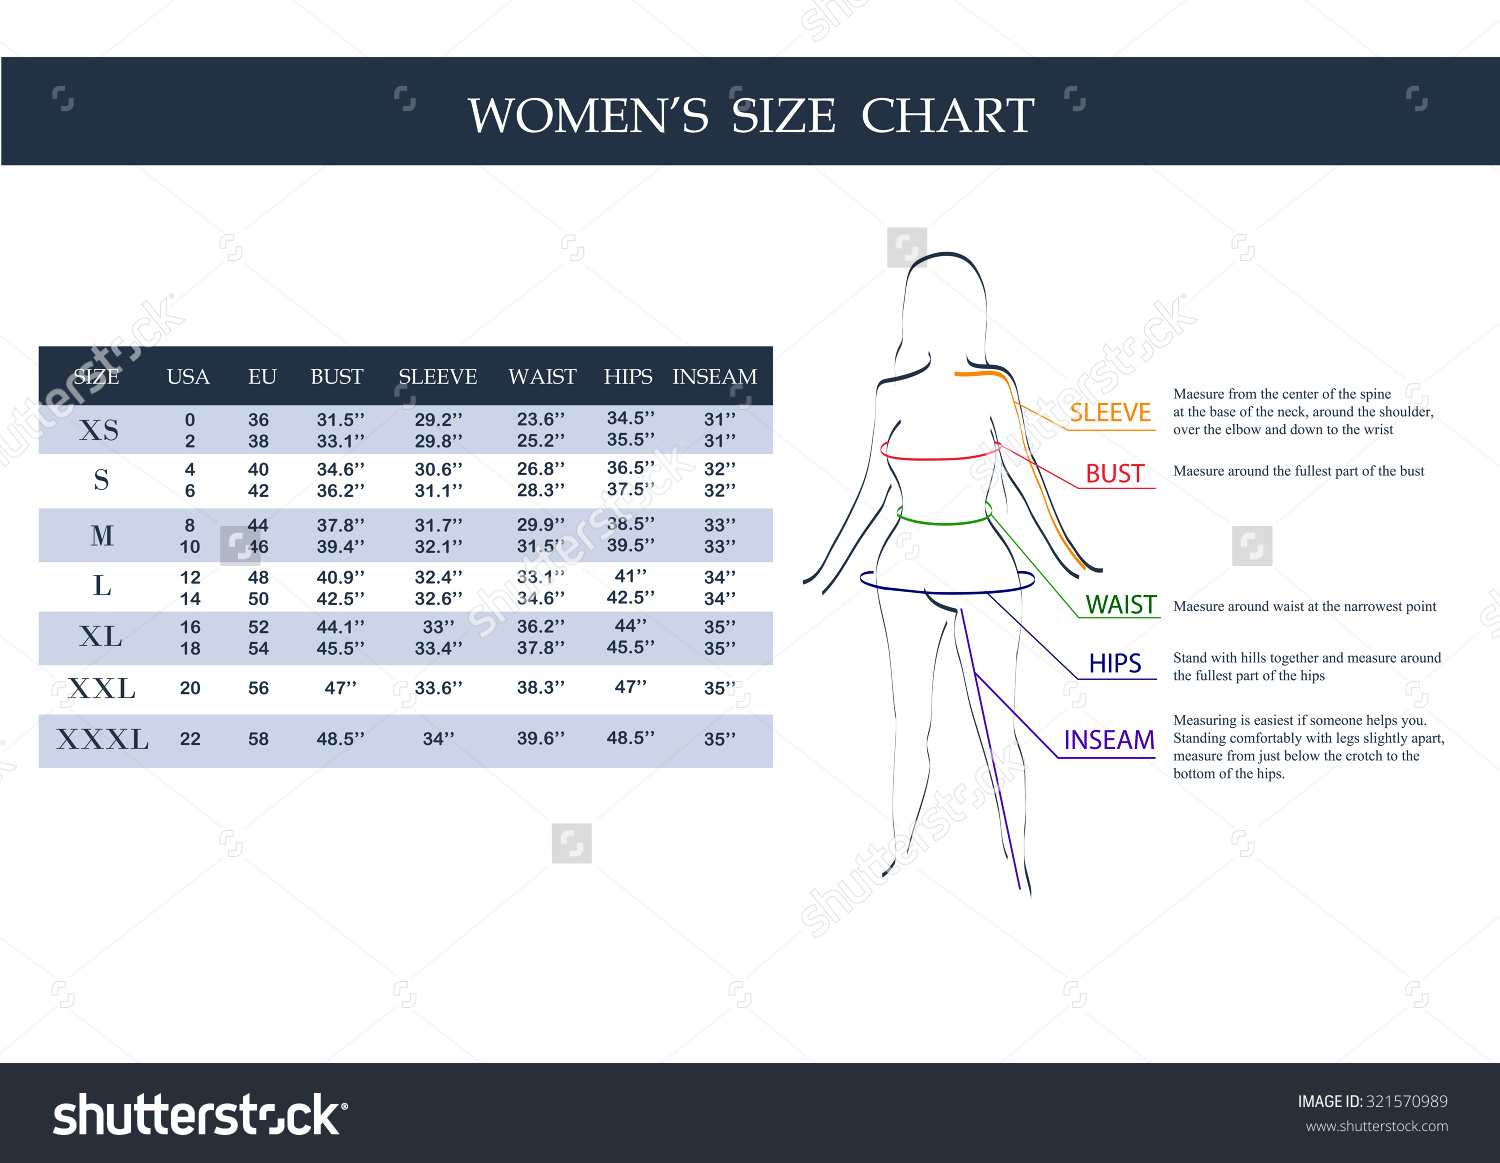 17+ Clothing Size Chart Templates - Word Excel Formats